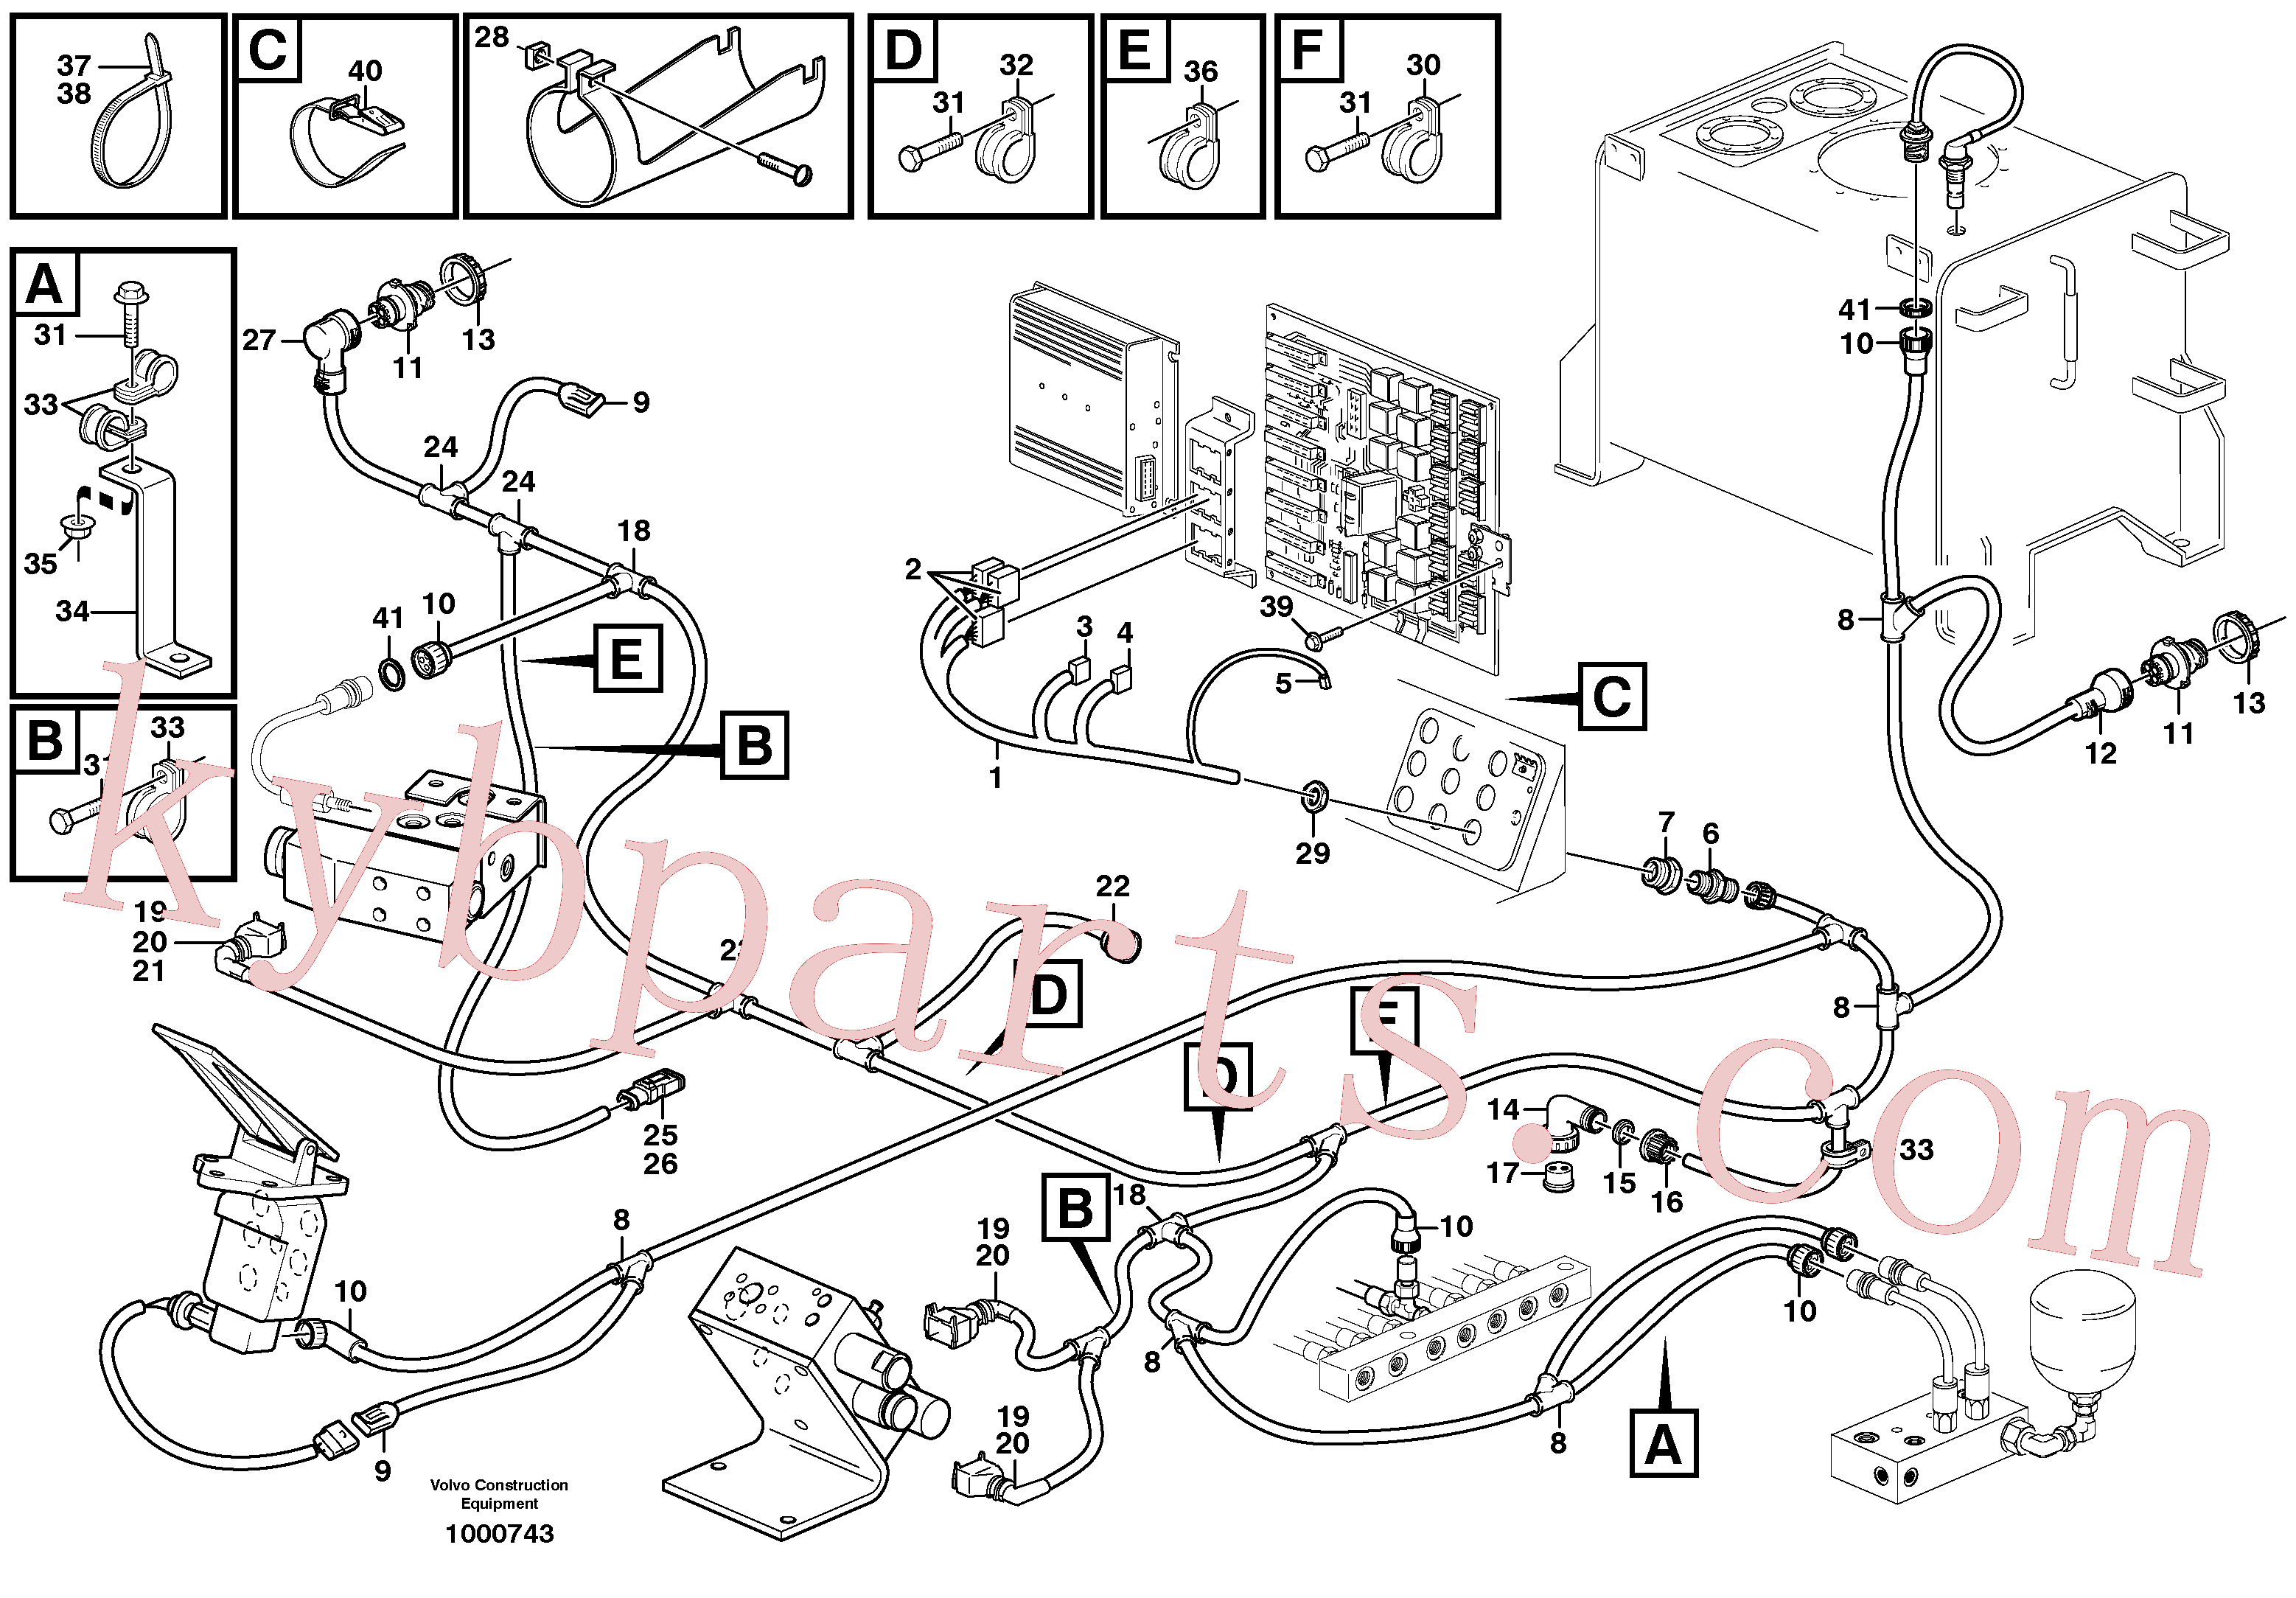 VOE977600 for Volvo Cable harness, under cab(1000743 assembly)